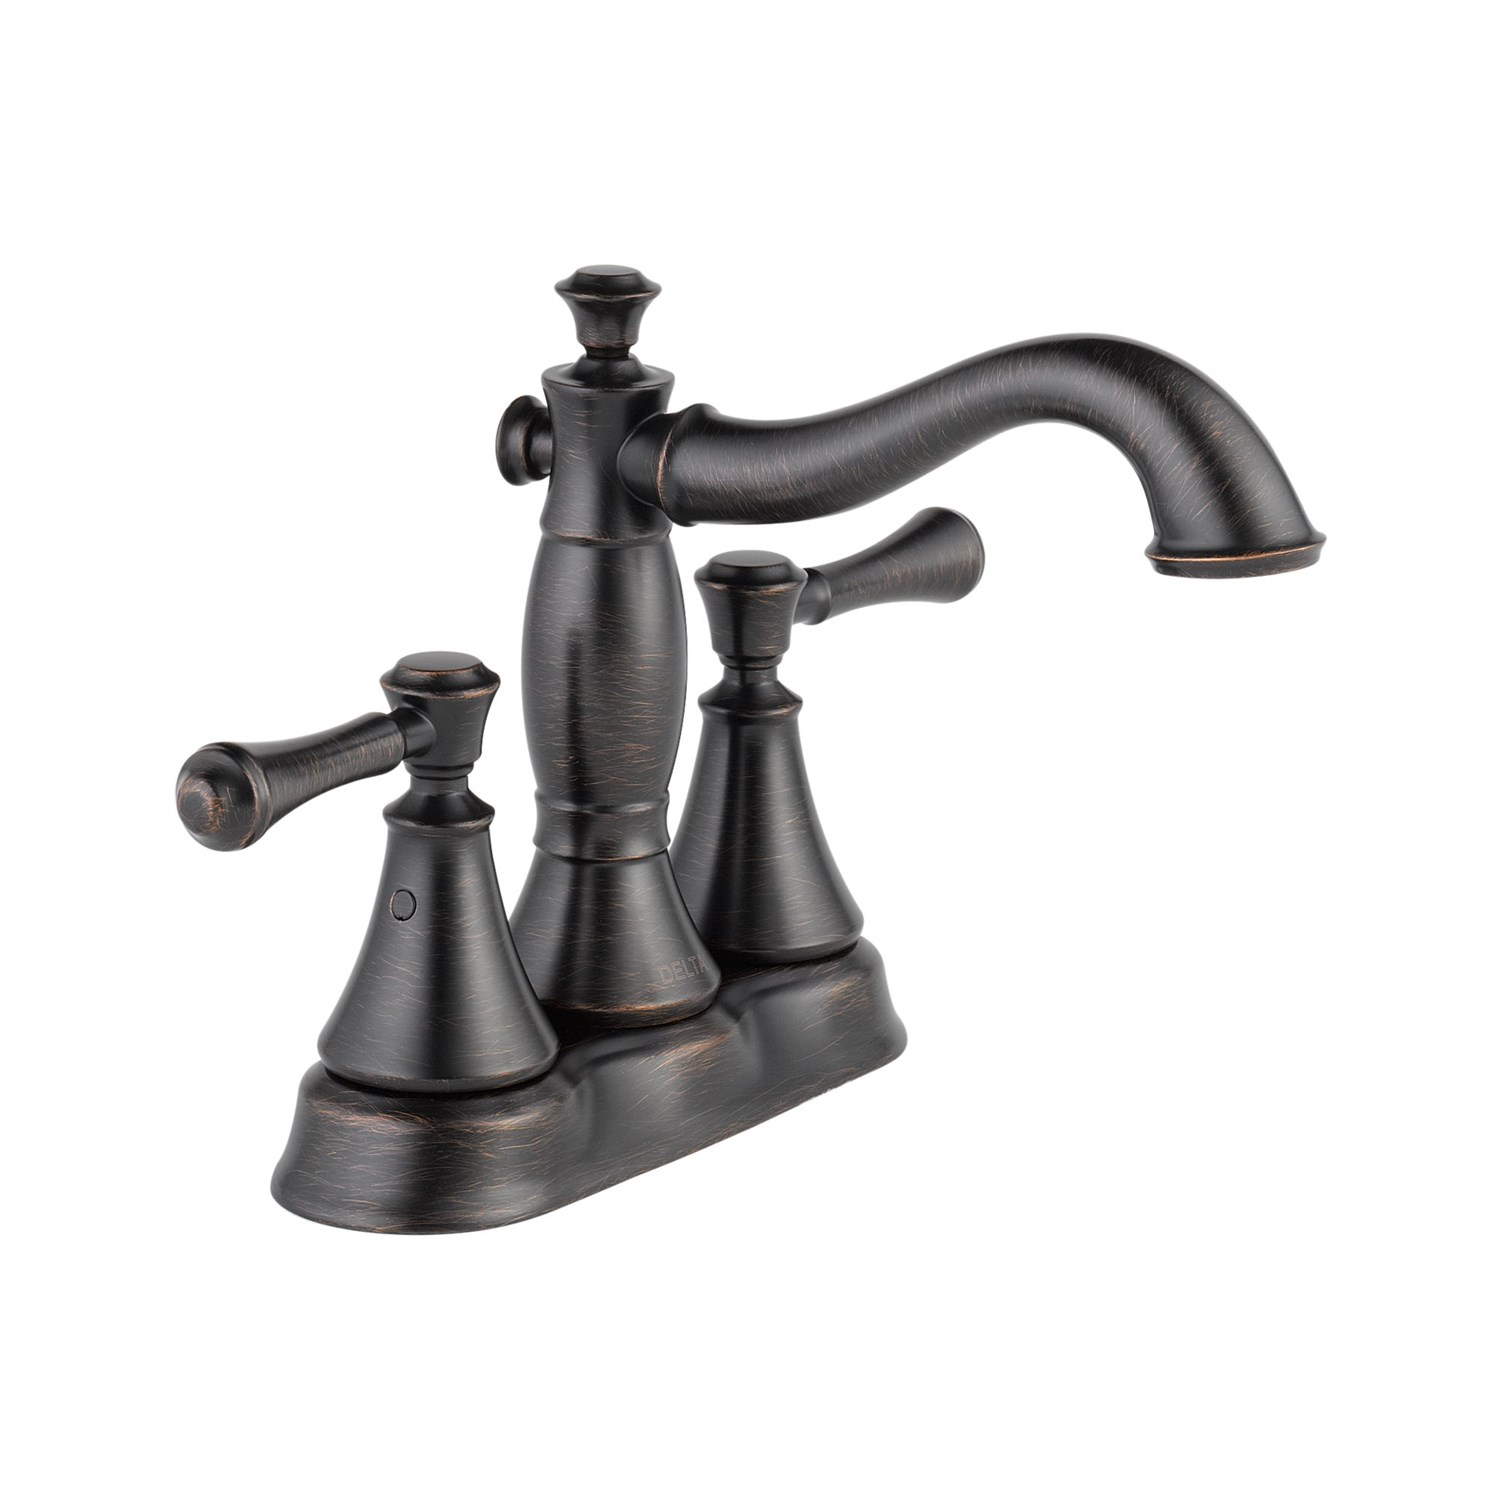 Dazzling delta cassidy kitchen faucet for kitchen faucet ideas with delta single handle kitchen faucet with spray